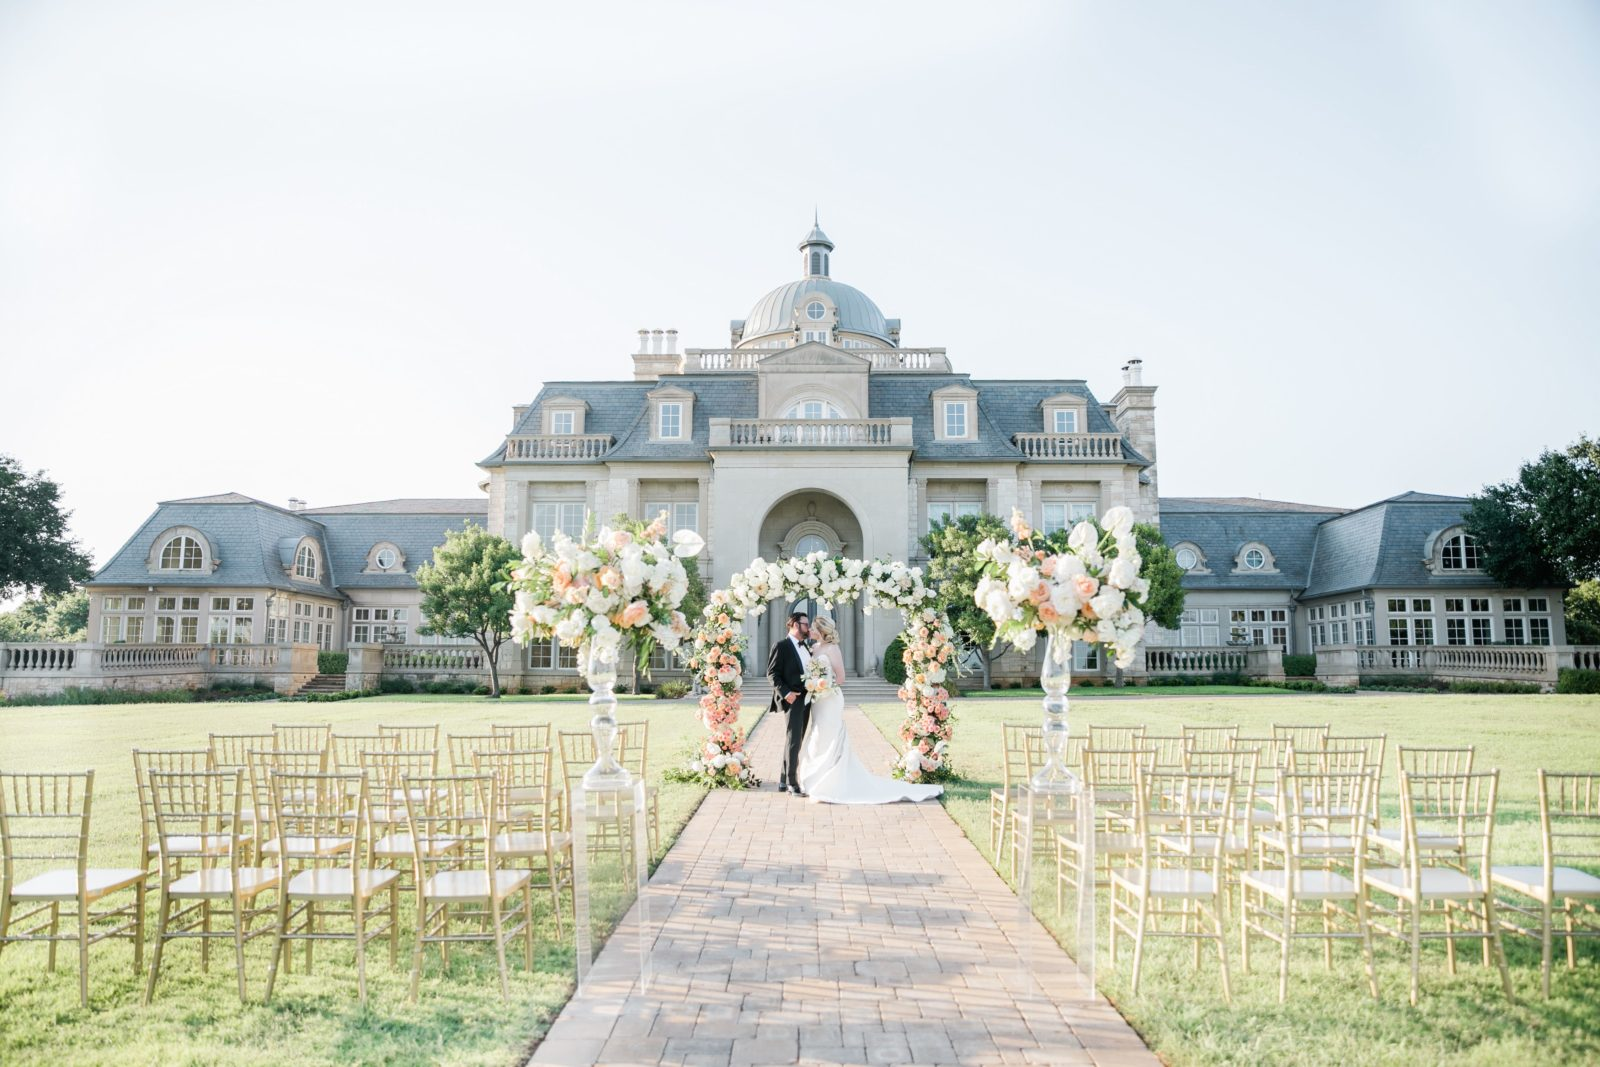 Outdoor wedding ceremony setup: Sophisticated and Chic wedding inspiration on Alexa Kay Events